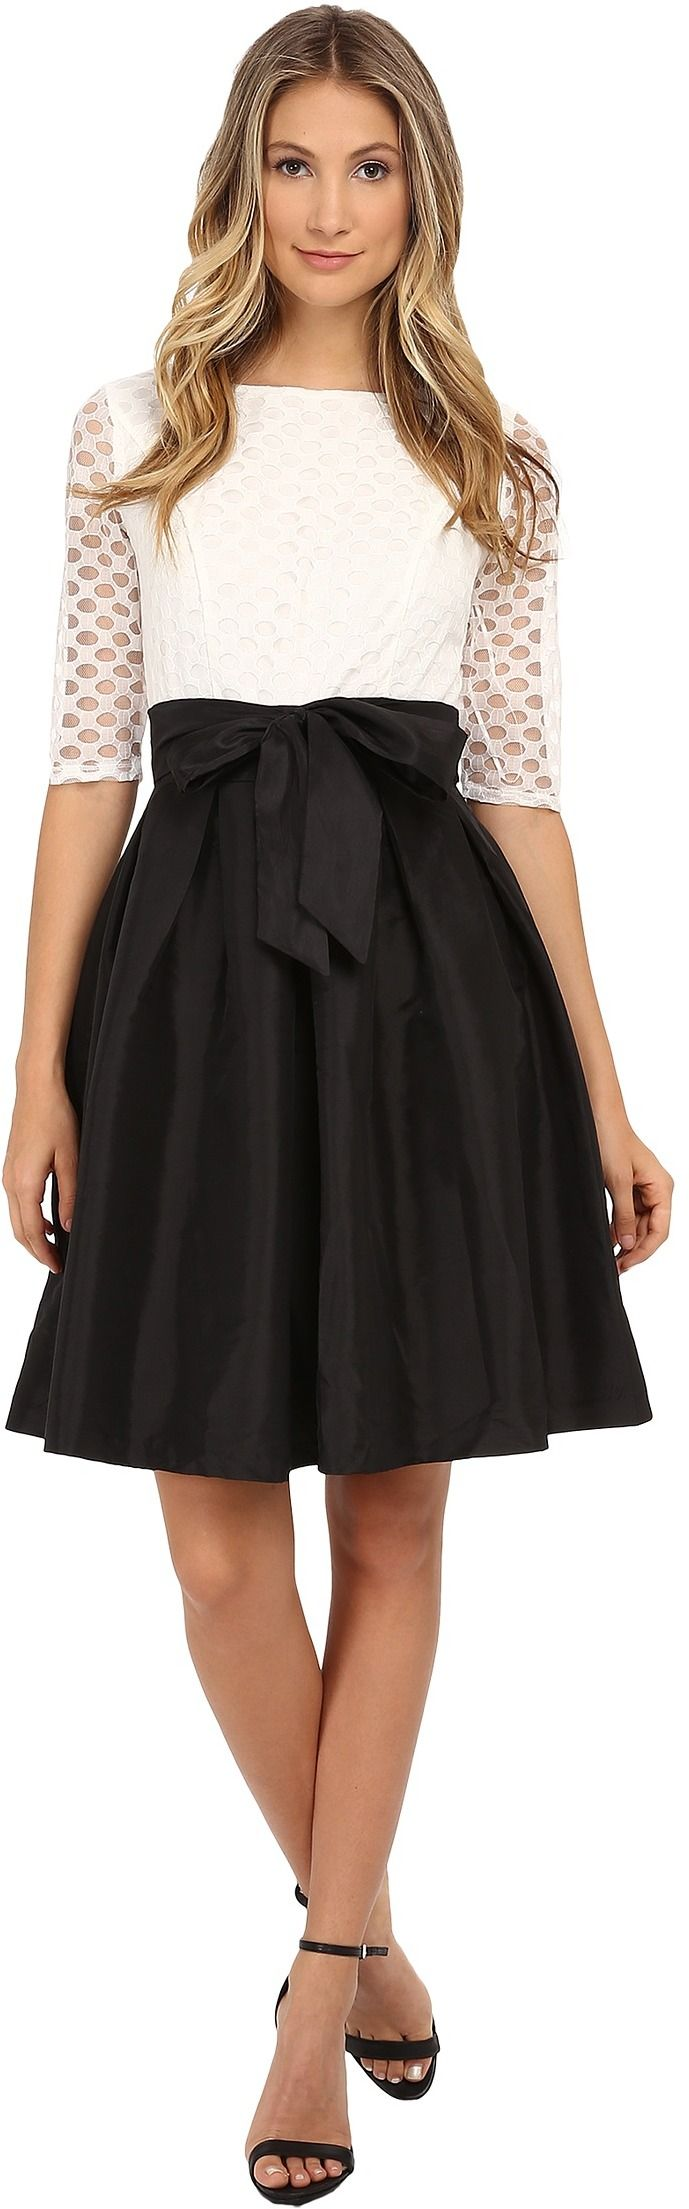 Beautiful black and white dress with see-through top and bowtie belt